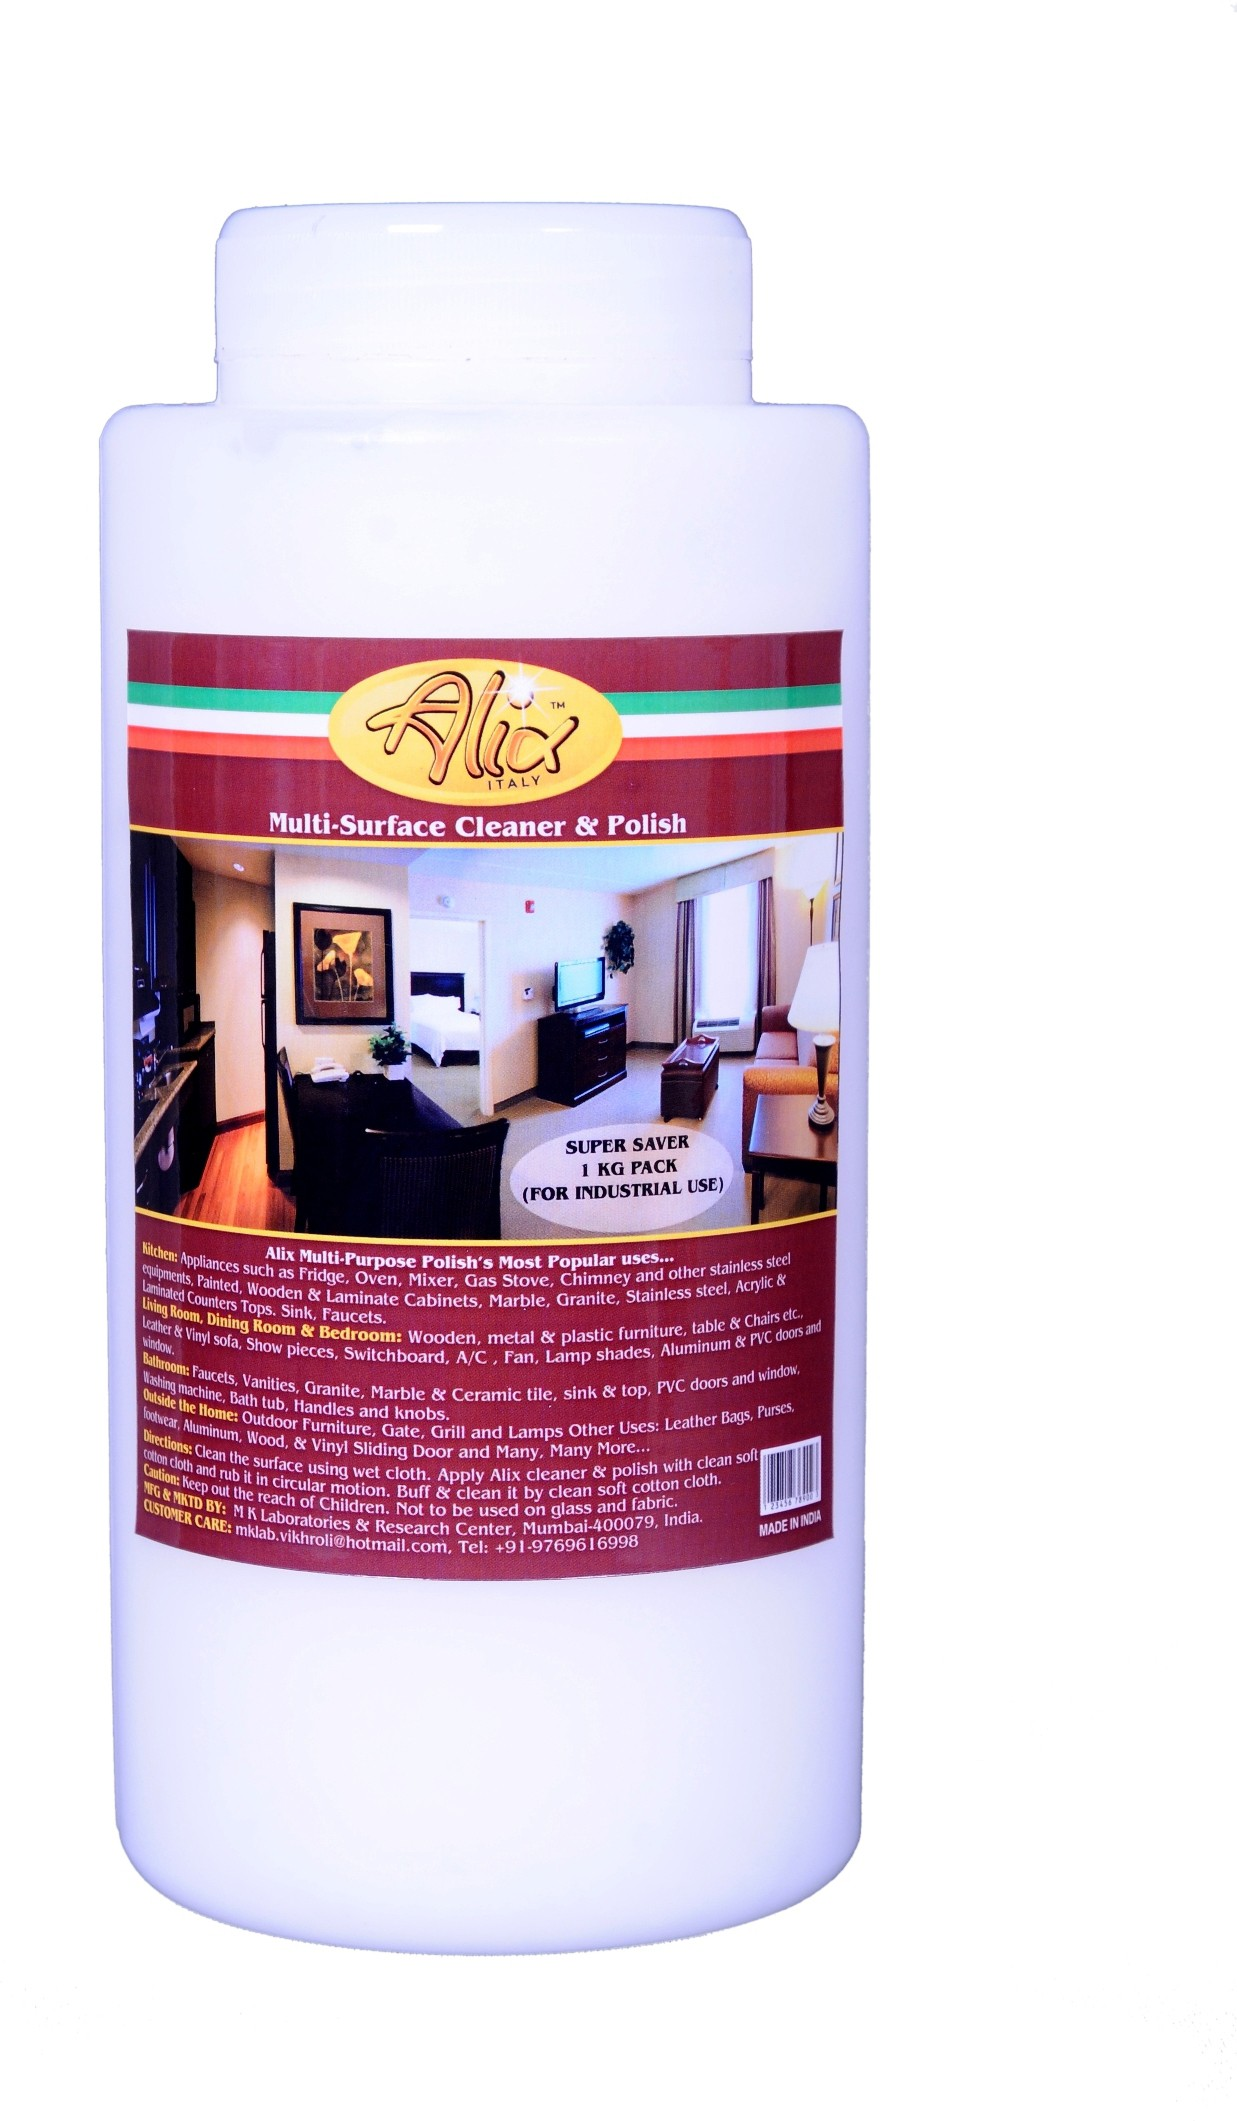 ALIX Multi-Surface Cleaner & Polish Kitchen Cleaner